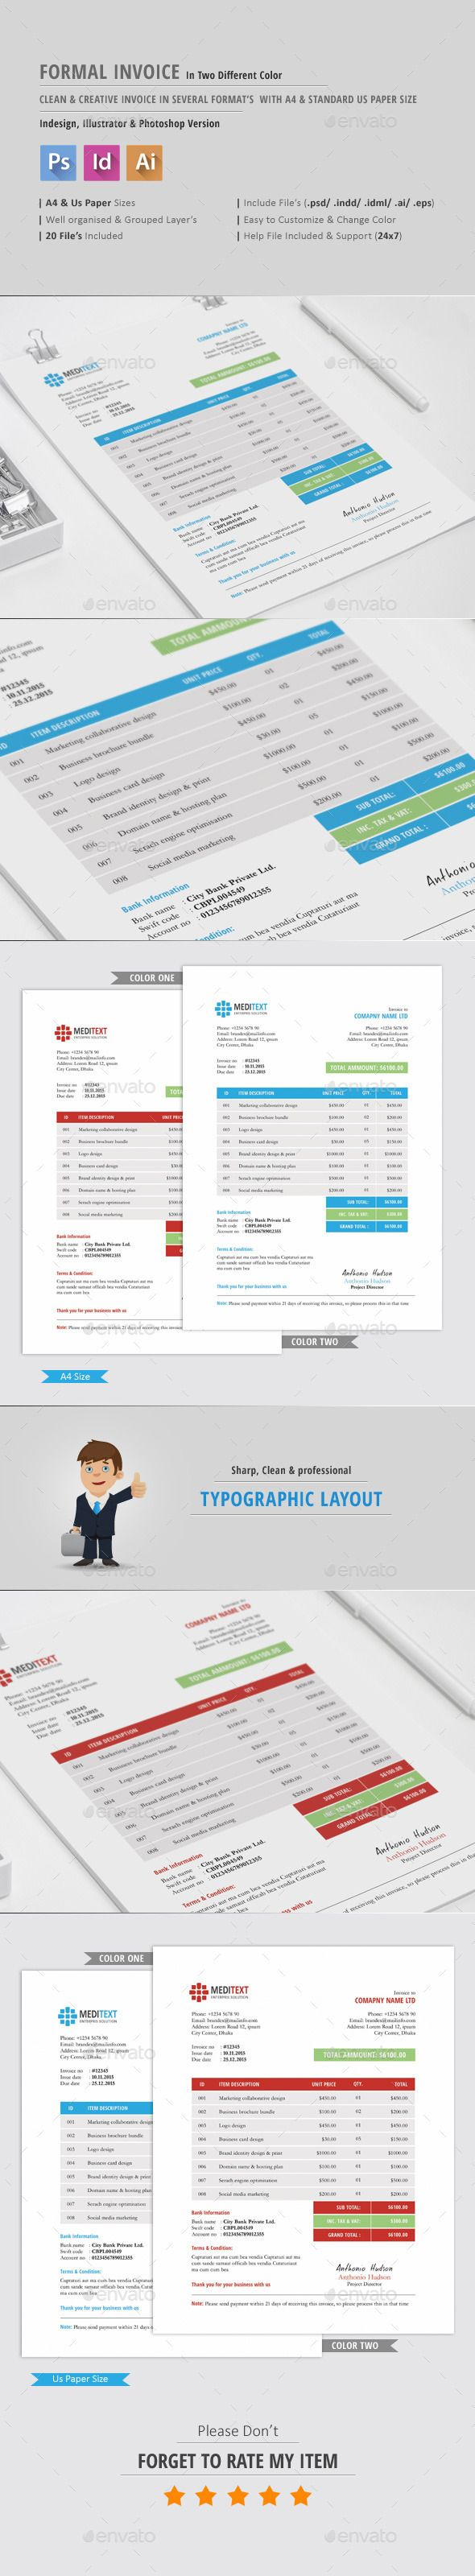 Formal Invoice Template by bddesignhub  Each template is fully layered and organized with proper names